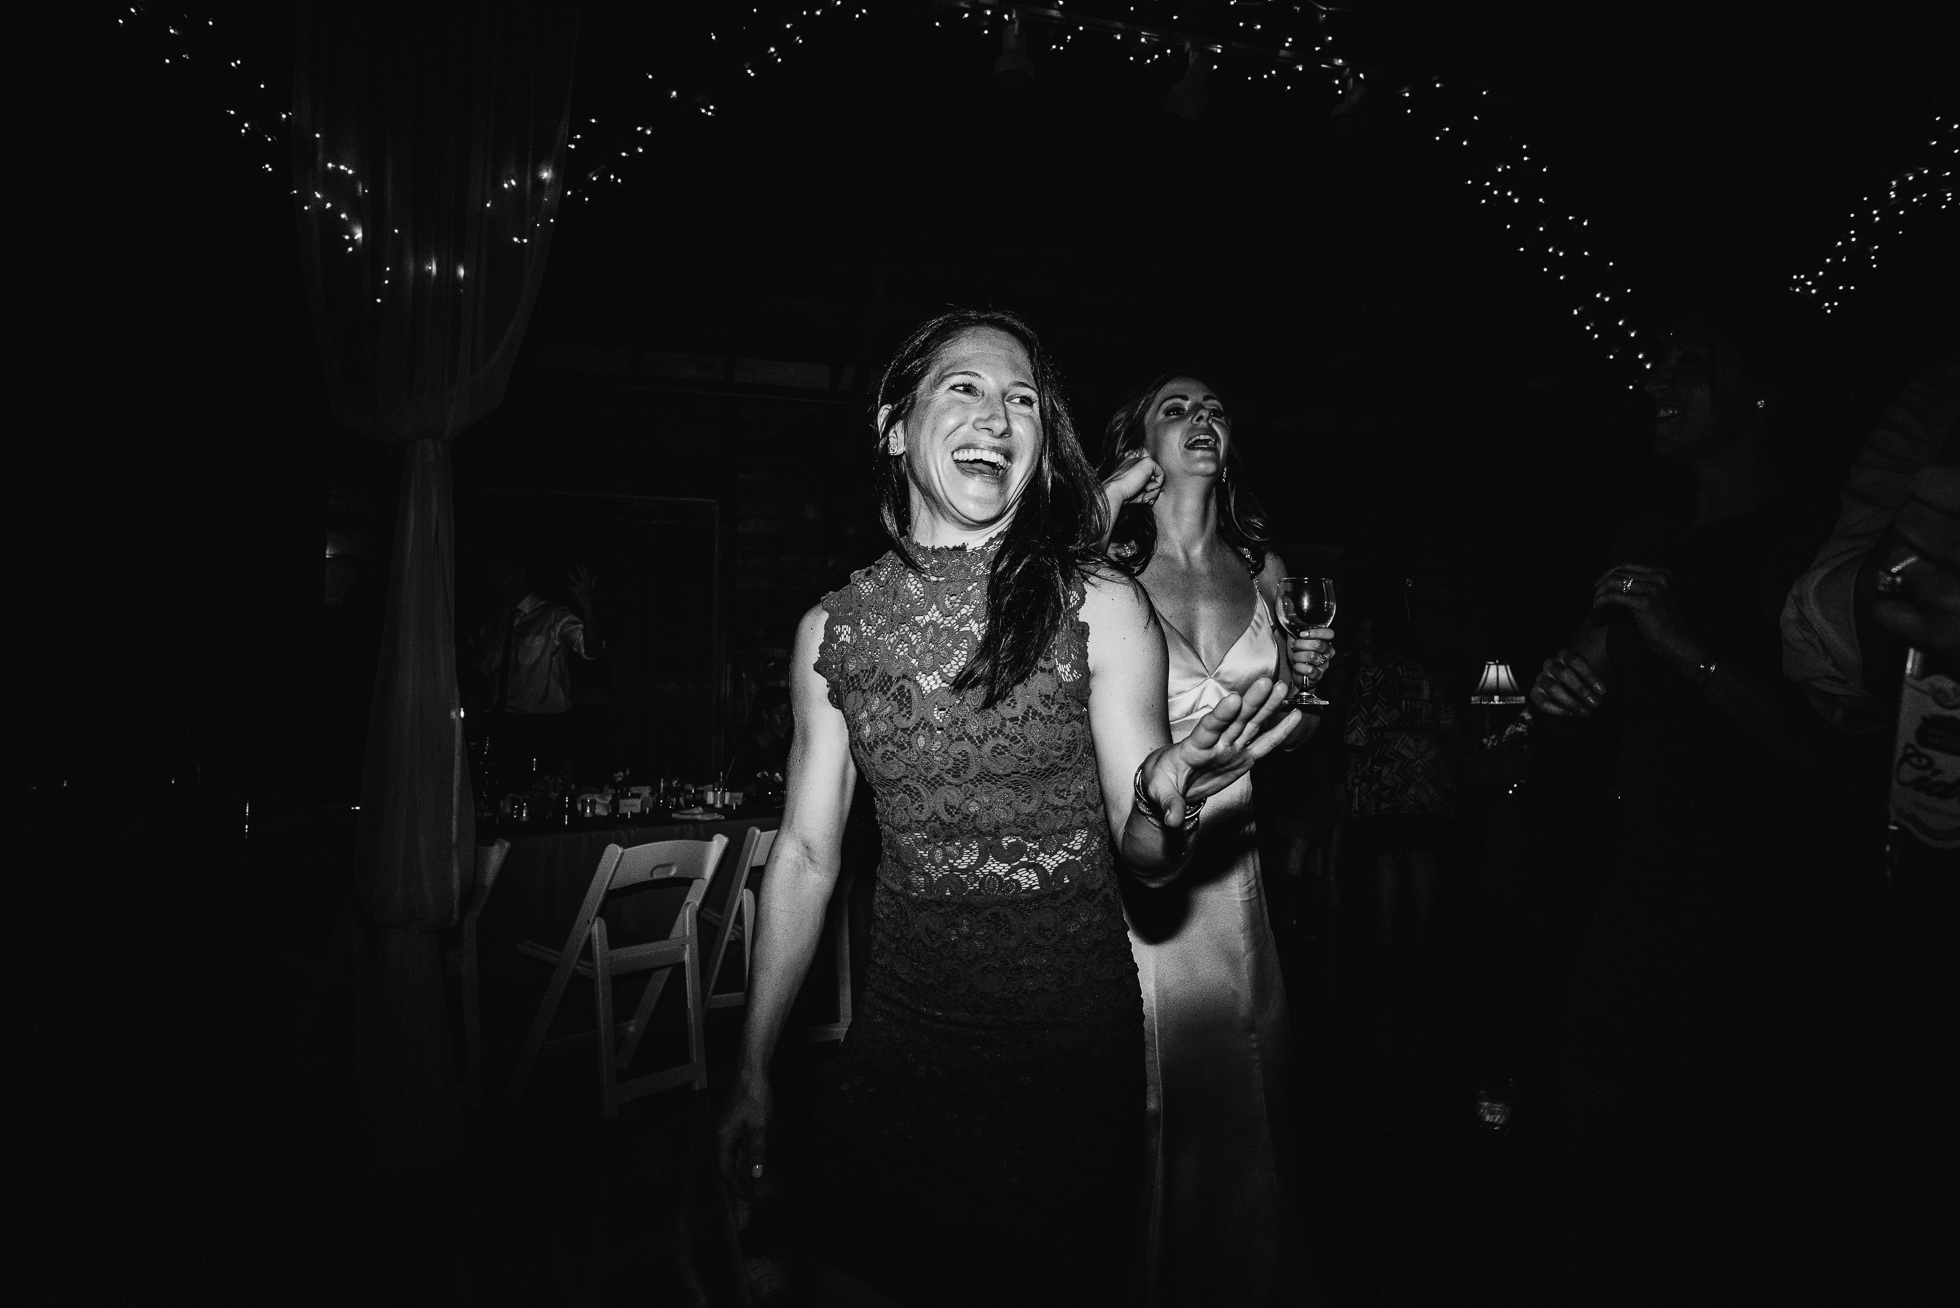 guests dancing at olde tater barn wedding in central bridge, ny photographed by traverse the tides